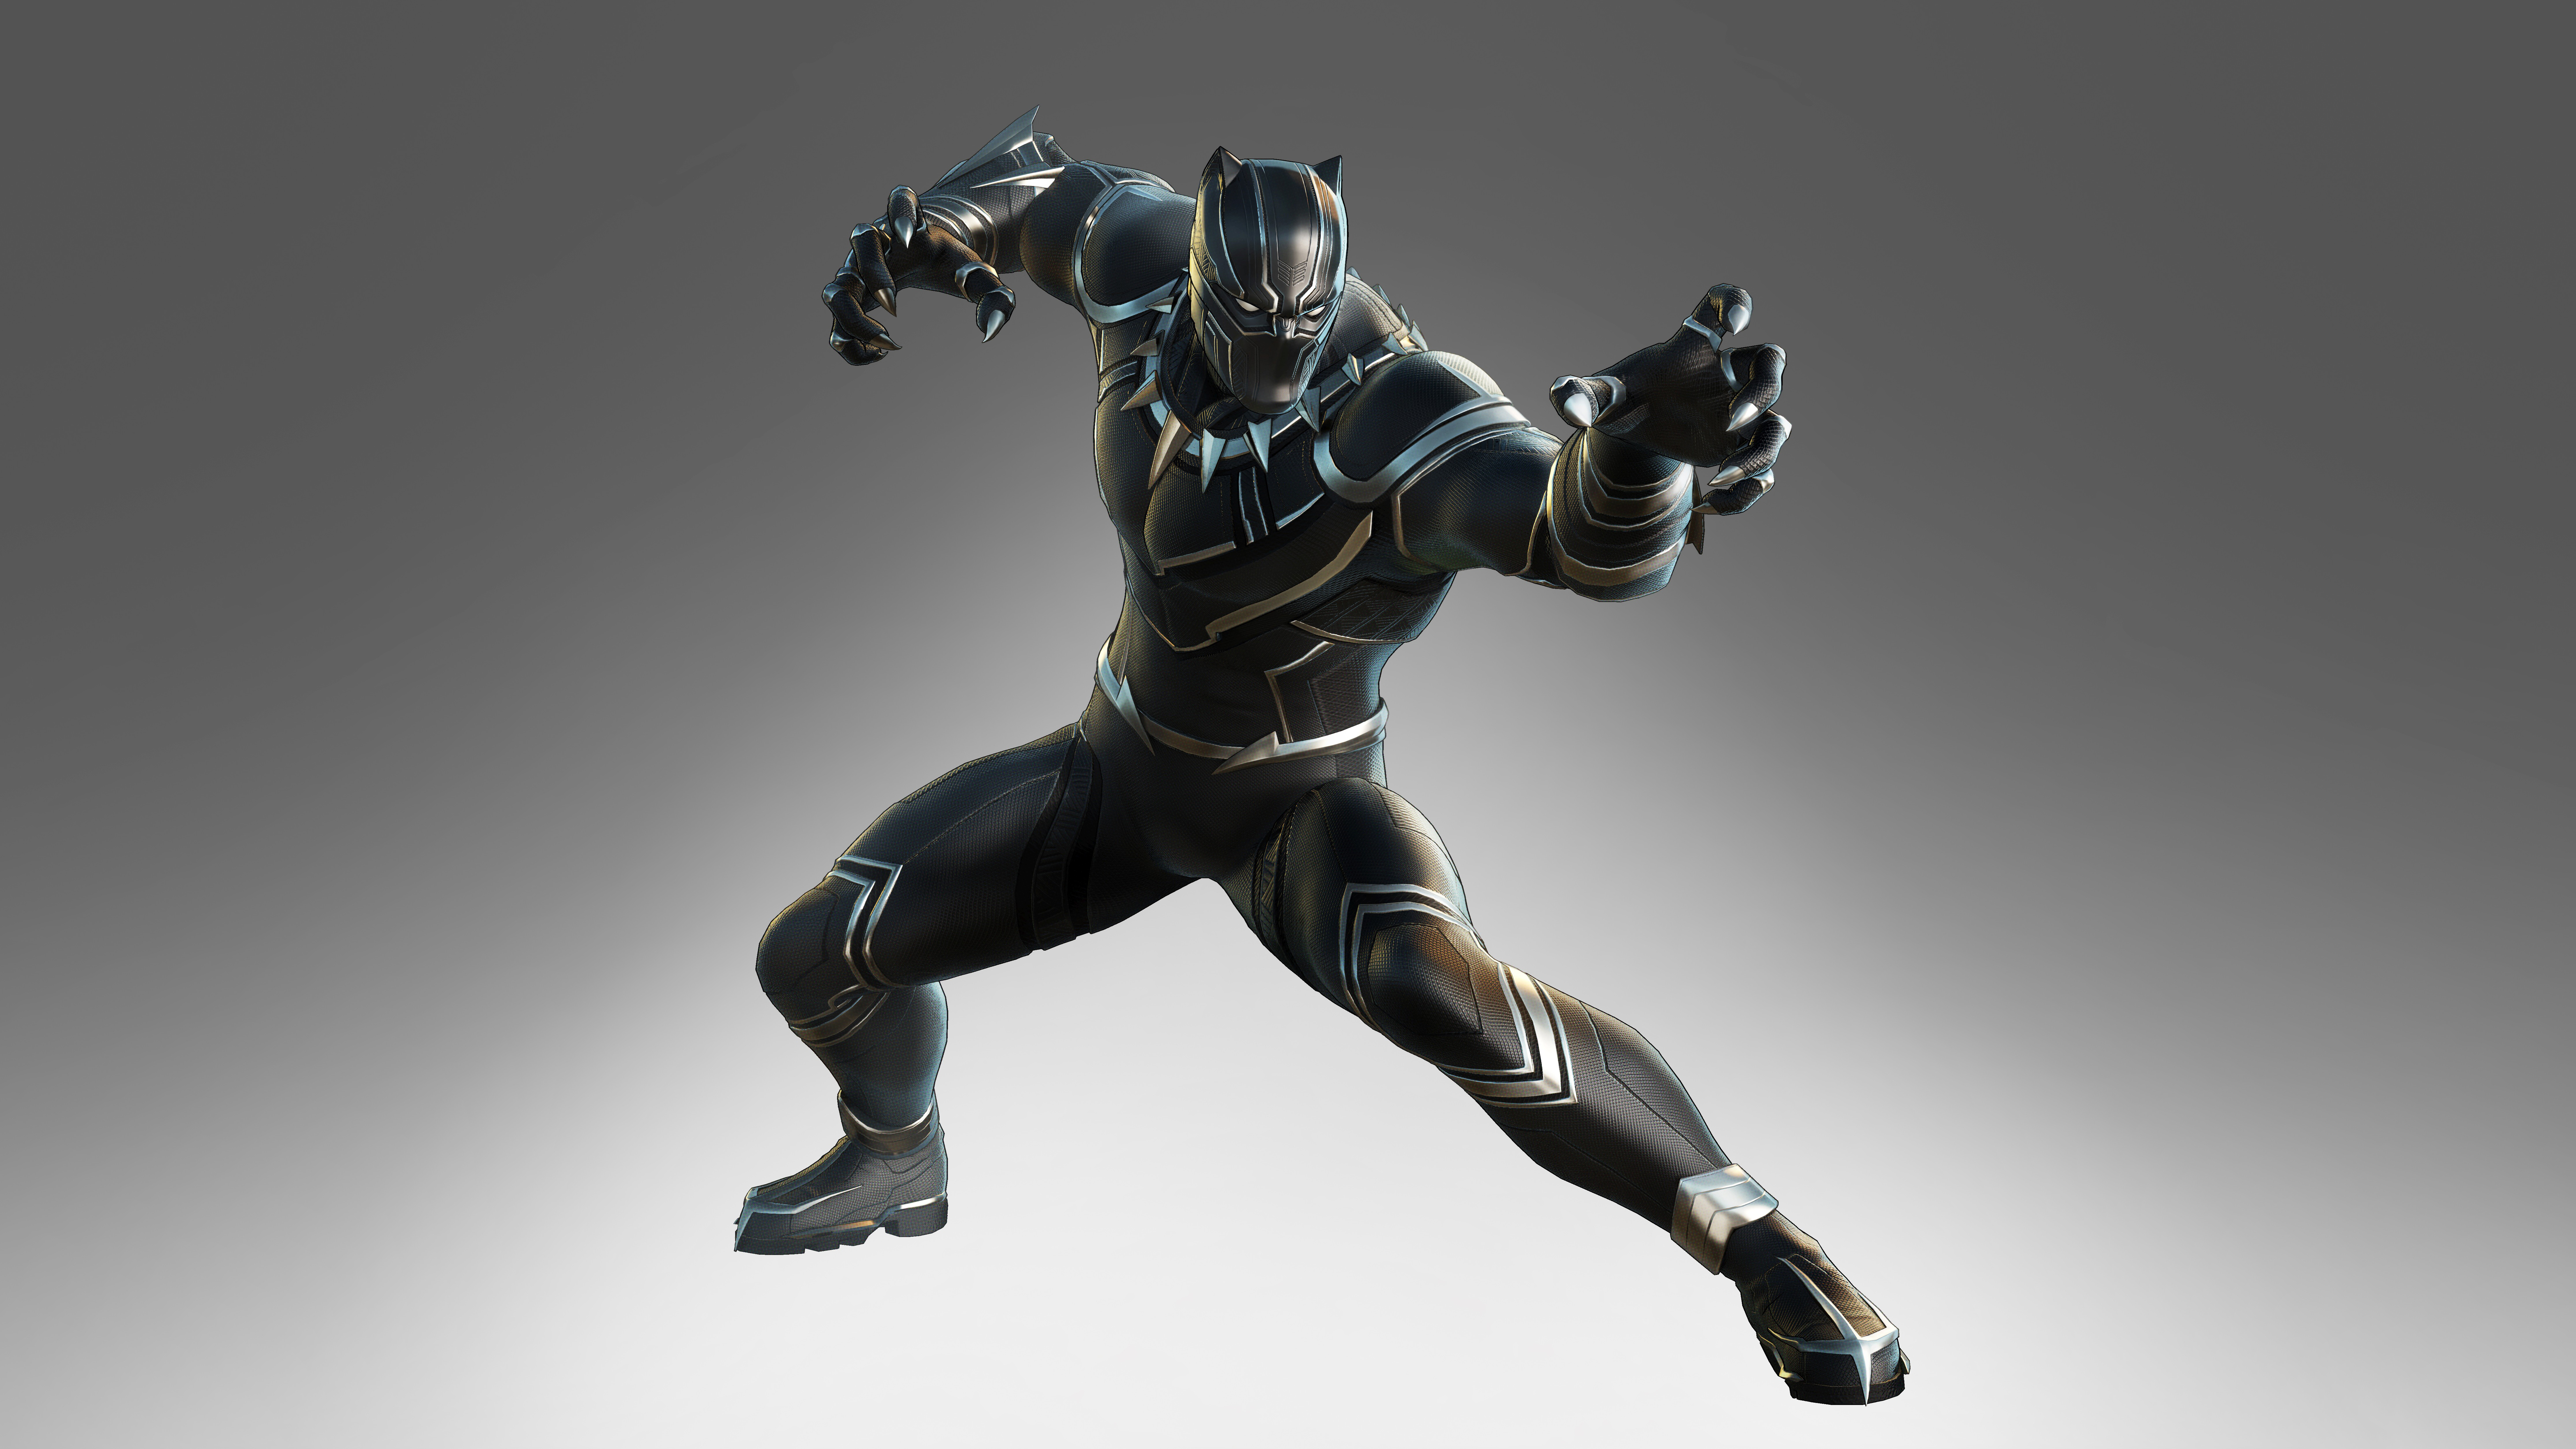 7680x4320 Marvel Ultimate Alliance 3 2019 Black Panther 8k HD 4k